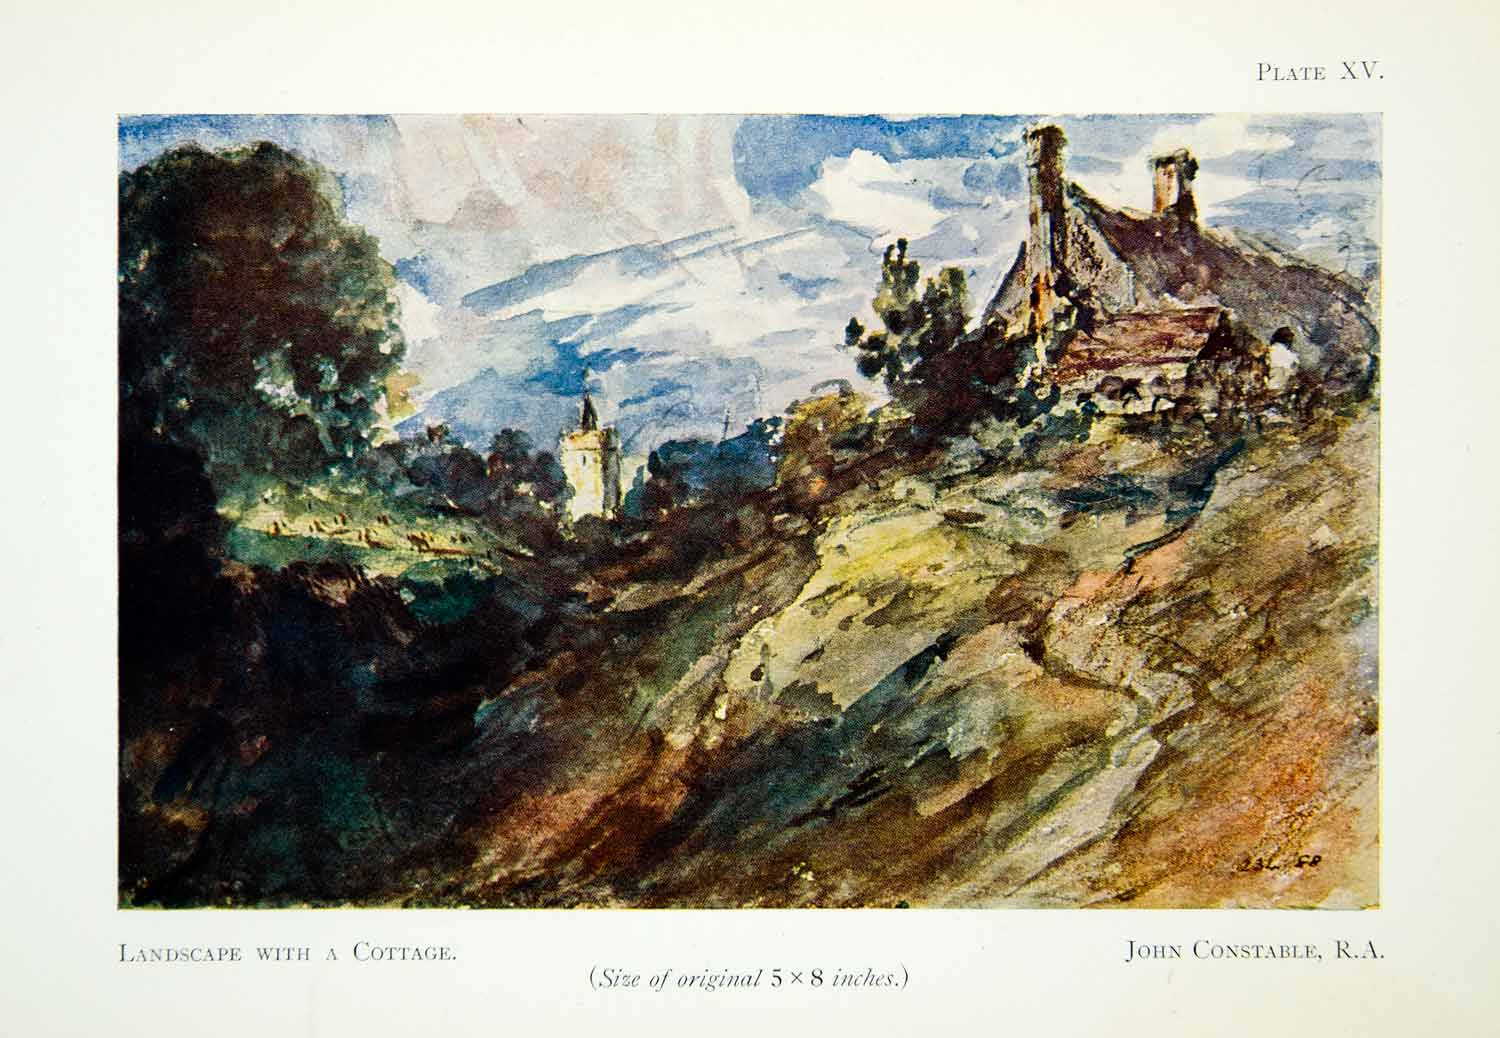 1929 Color Print Scenic Landscape Cottage John Constable Scenery Nature XADA5